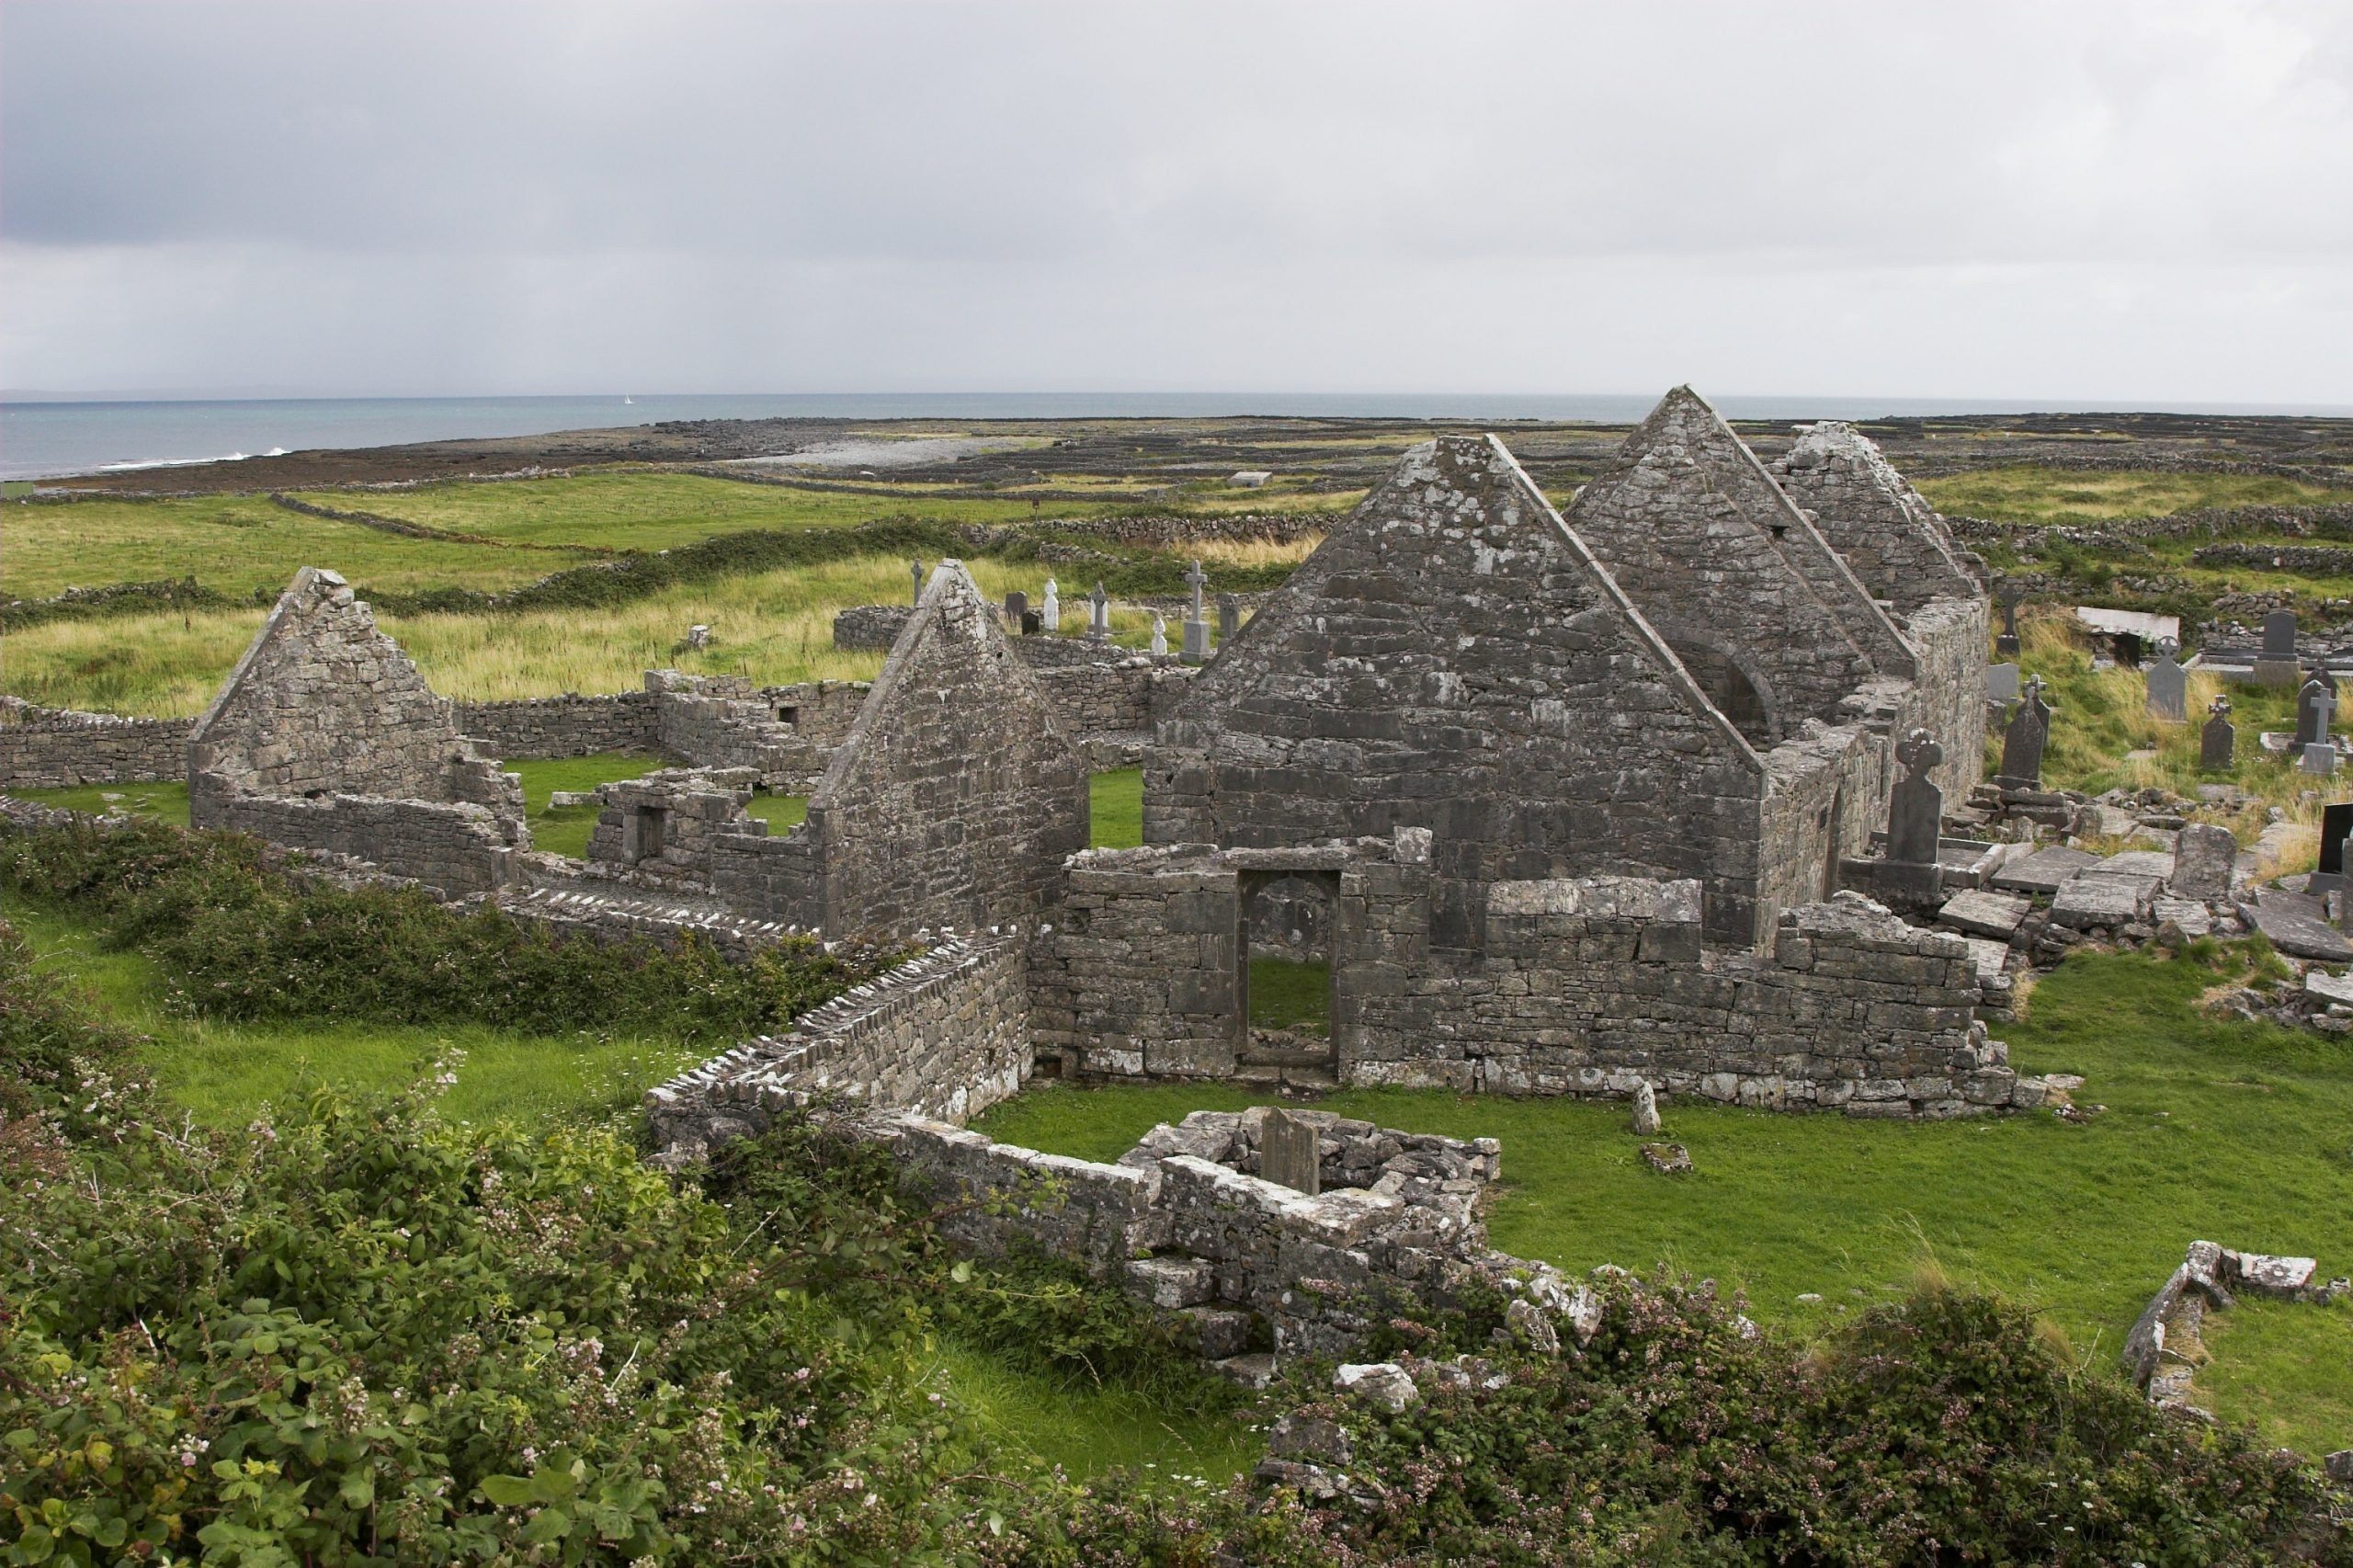 The Seven Churches Inishmore - Visit Galway